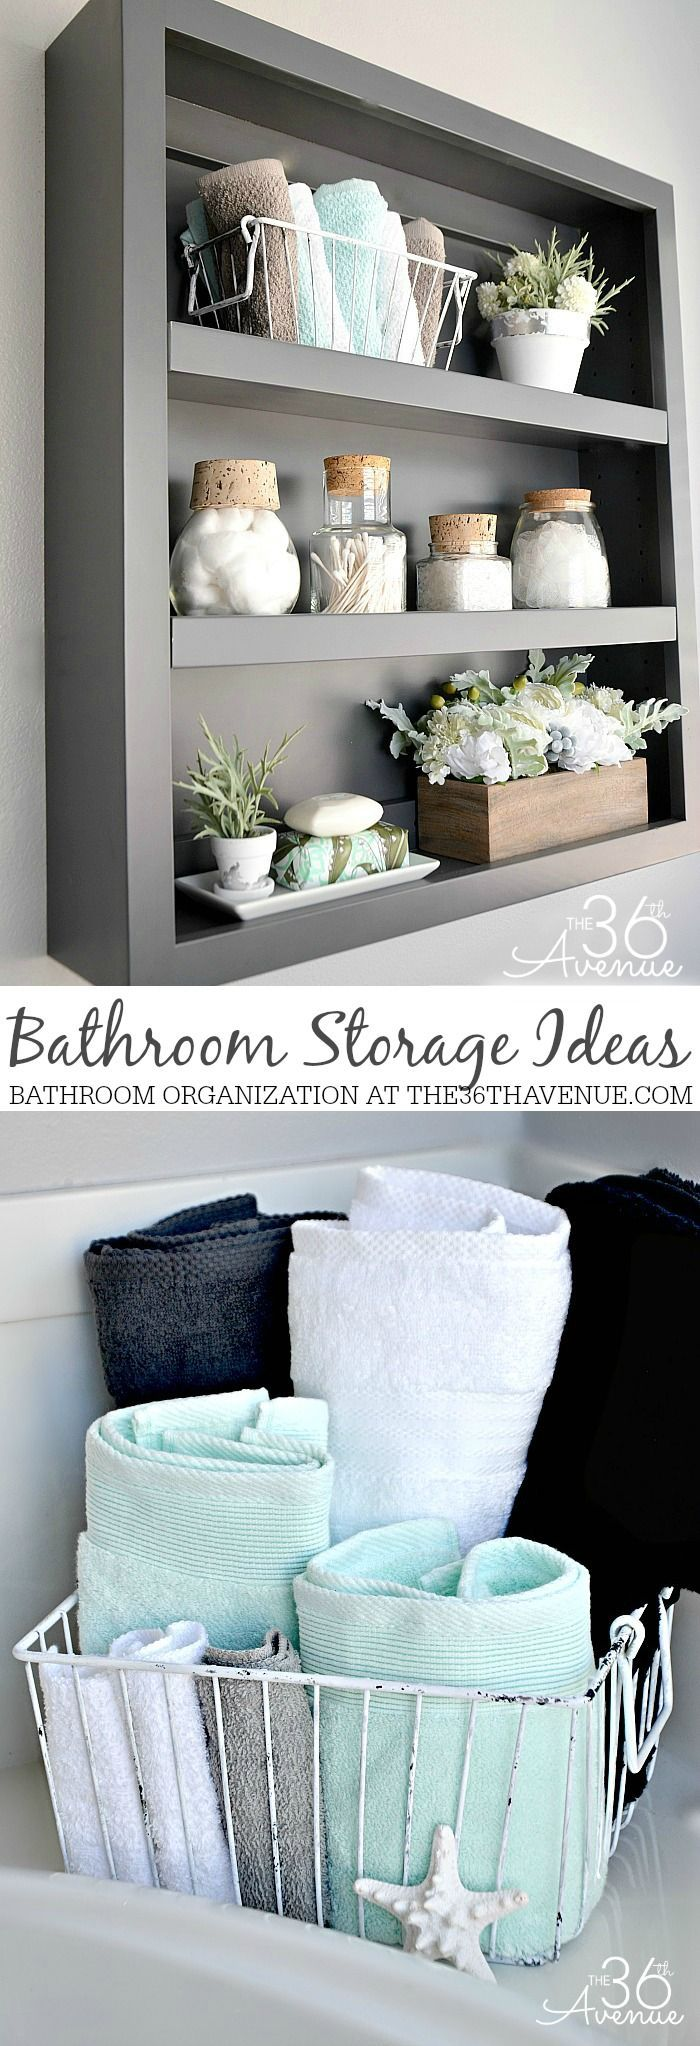 Get 20 Bathroom Accessories Ideas Onwithout Signing Up